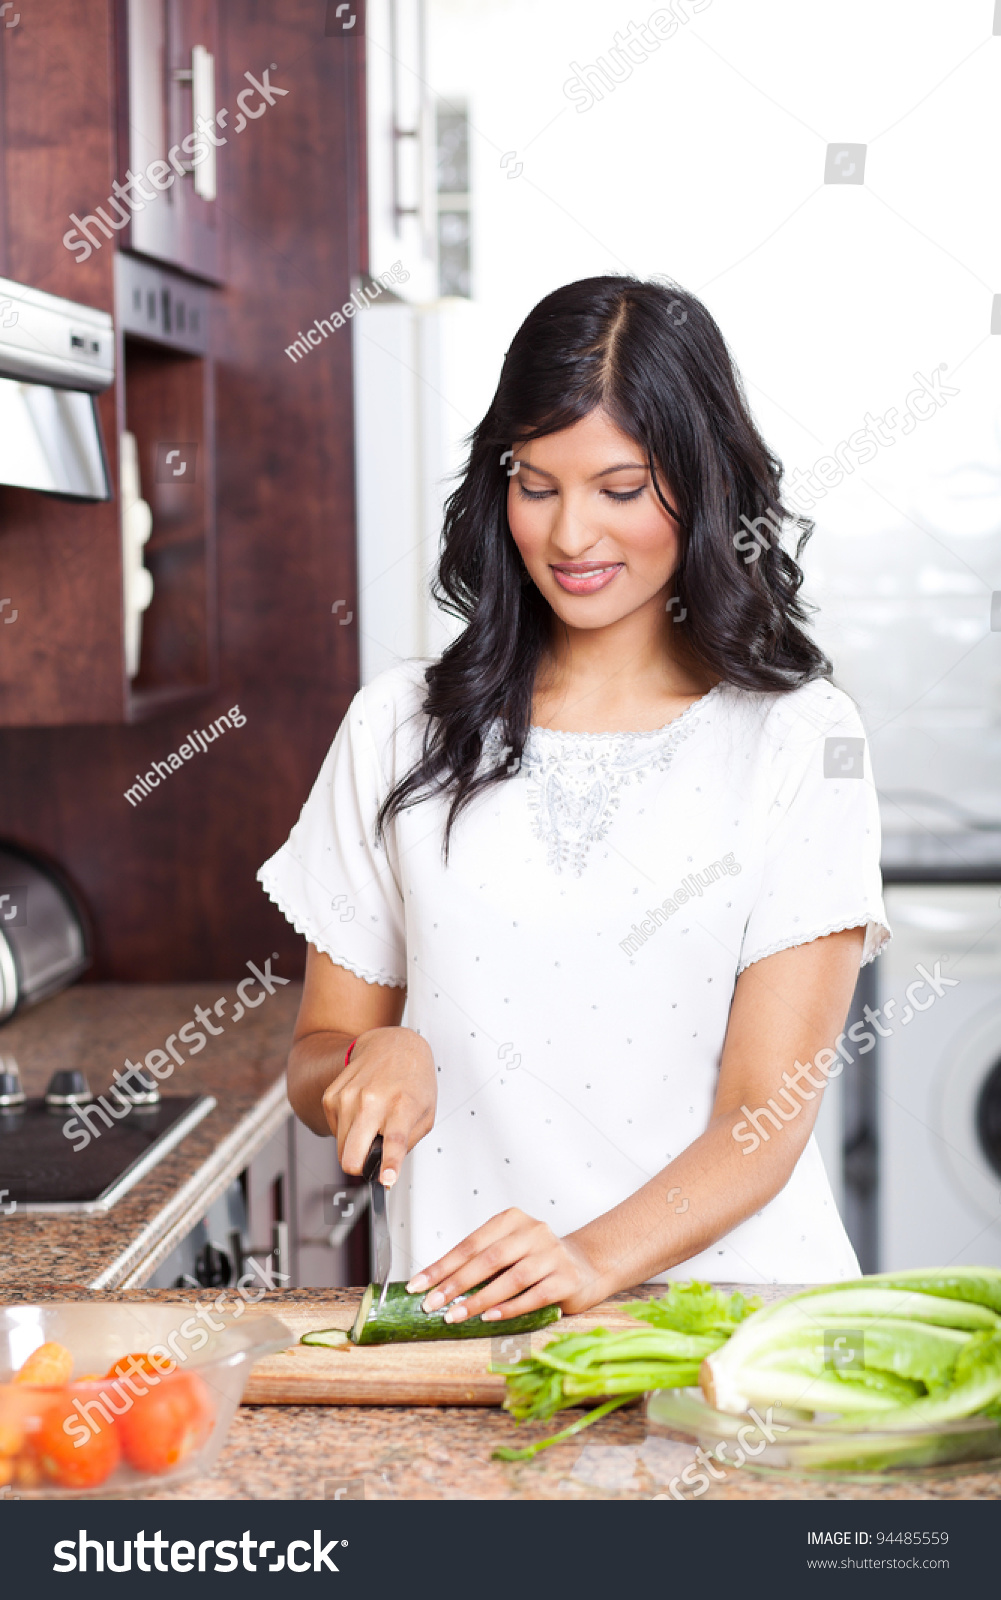 http://image.shutterstock.com/z/stock-photo-young-indian-woman-cooking-in-kitchen-94485559.jpg Indian Woman Cooking